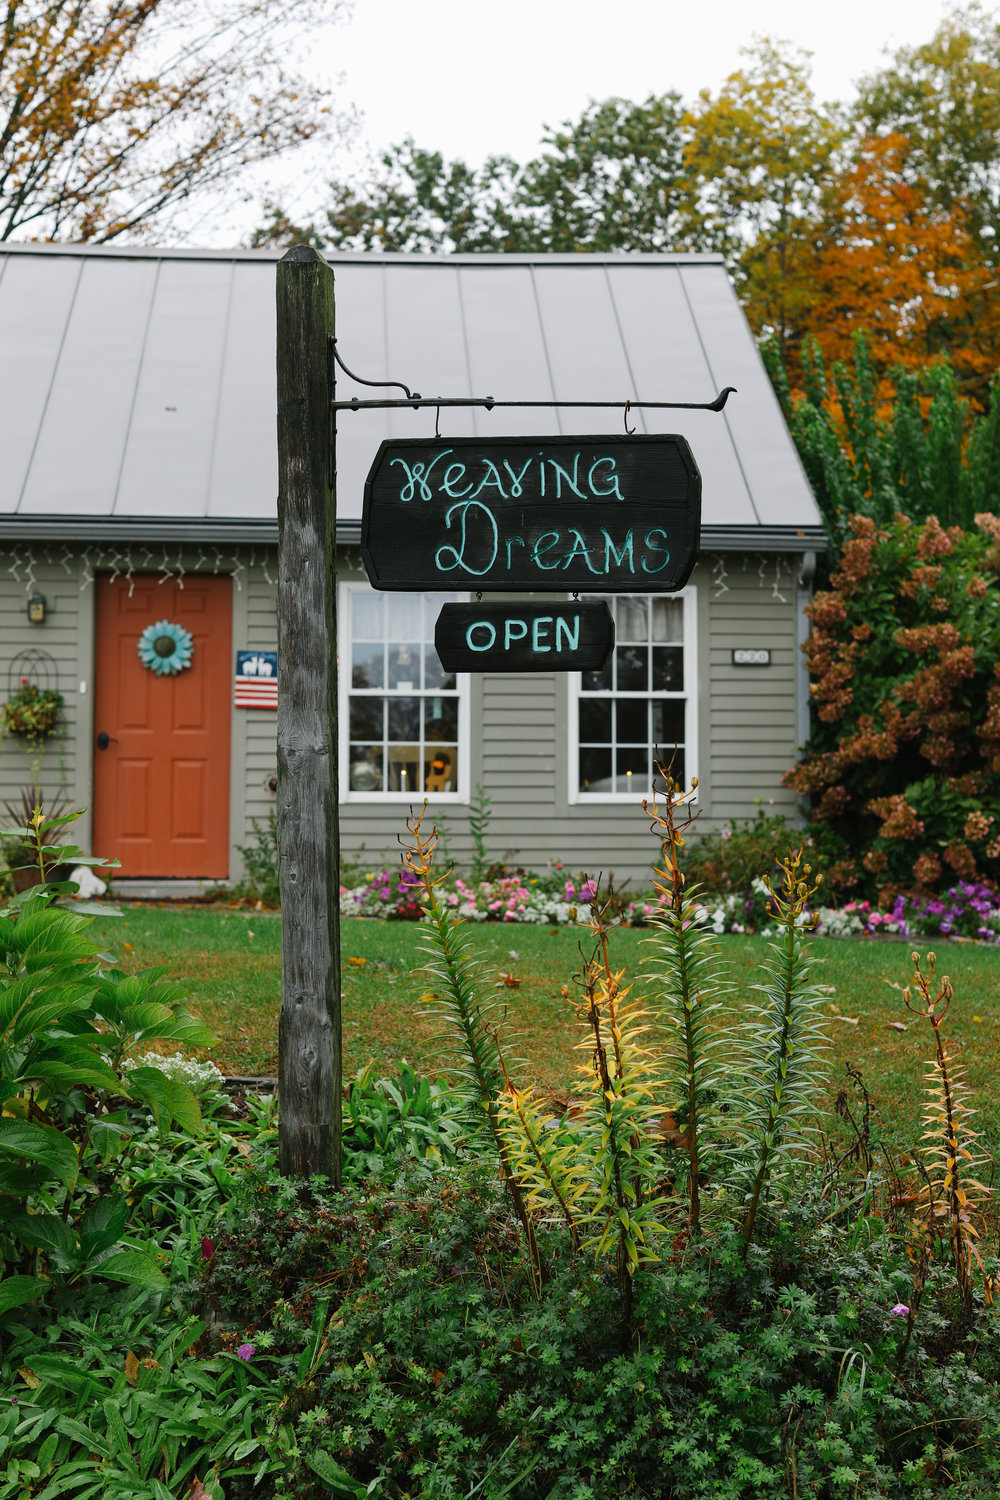 Weaving Dreams Airnbnb in Hartland, VT.